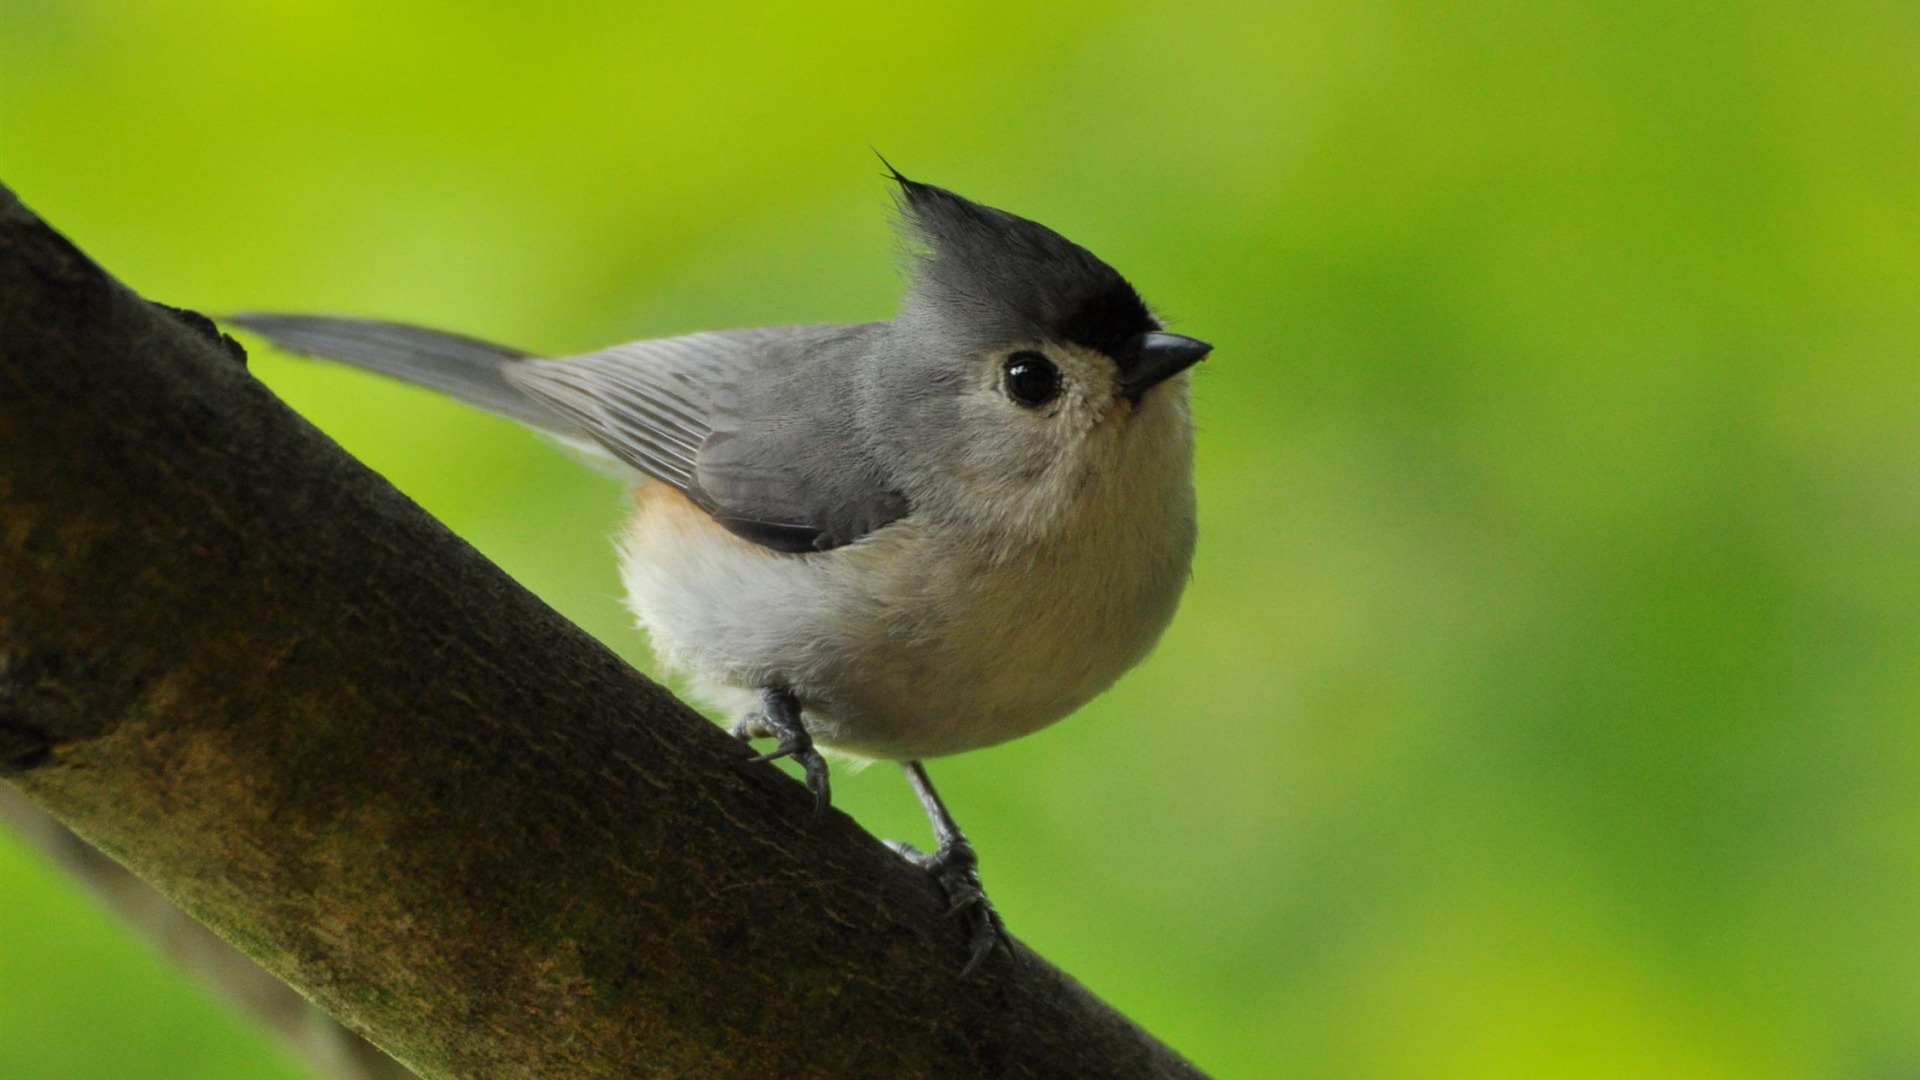 Paridae Tufted Titmouse-Birds animal wallpaper - 1920x1080